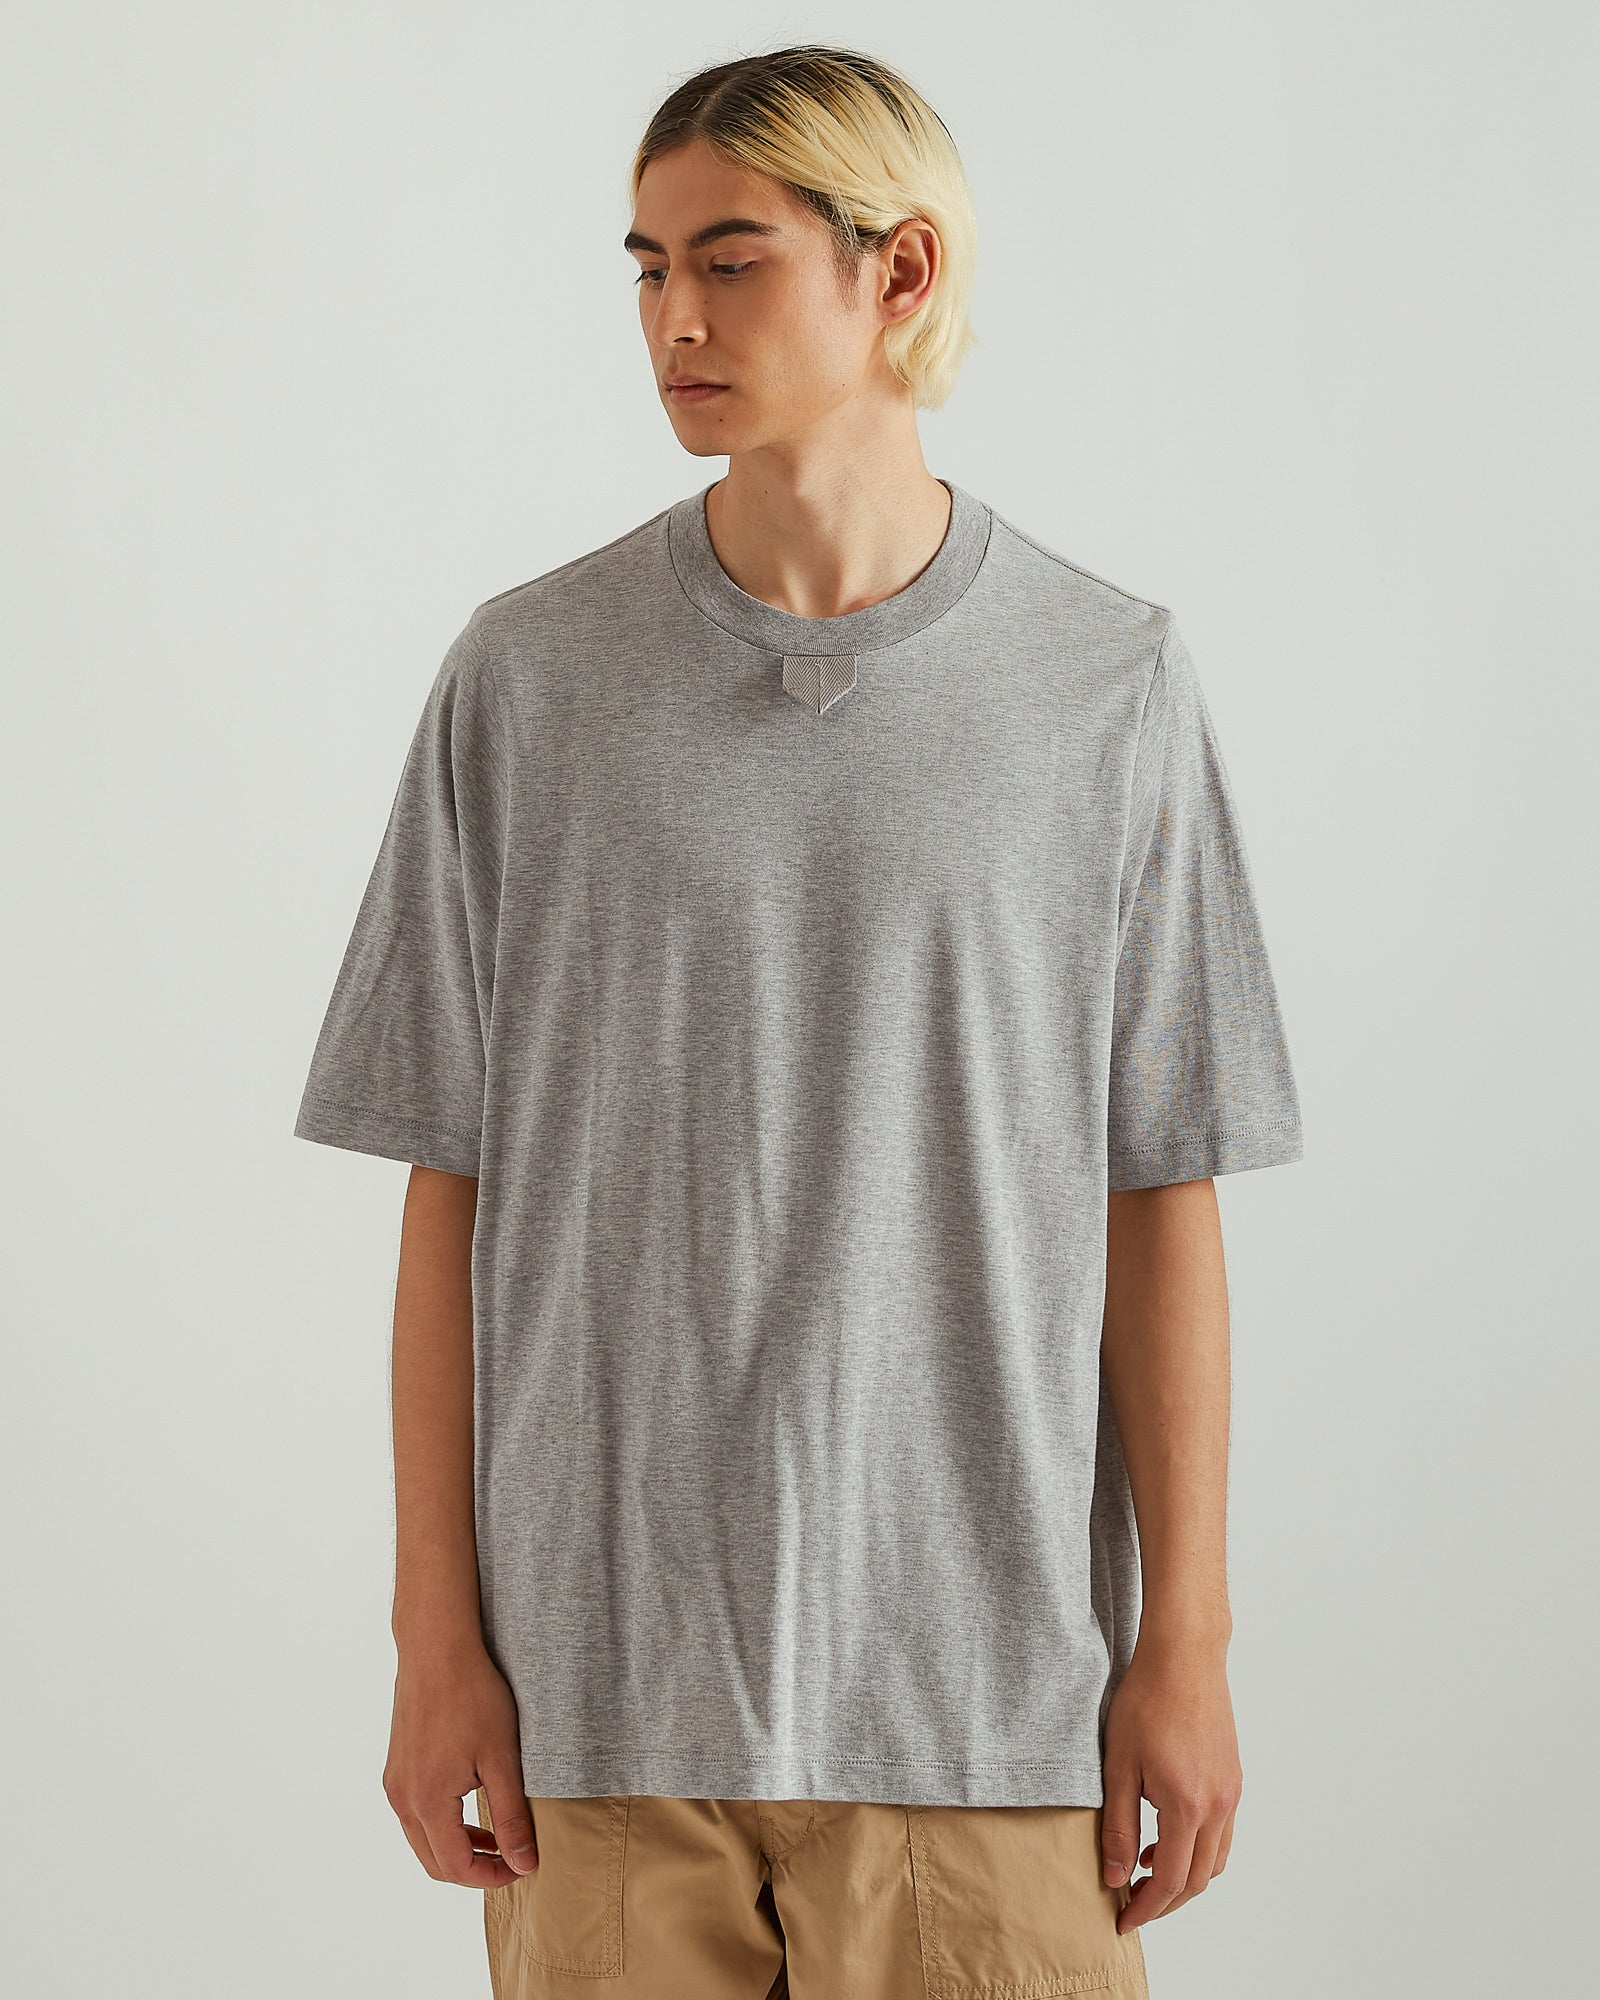 T-Shirt With Tape in Gray